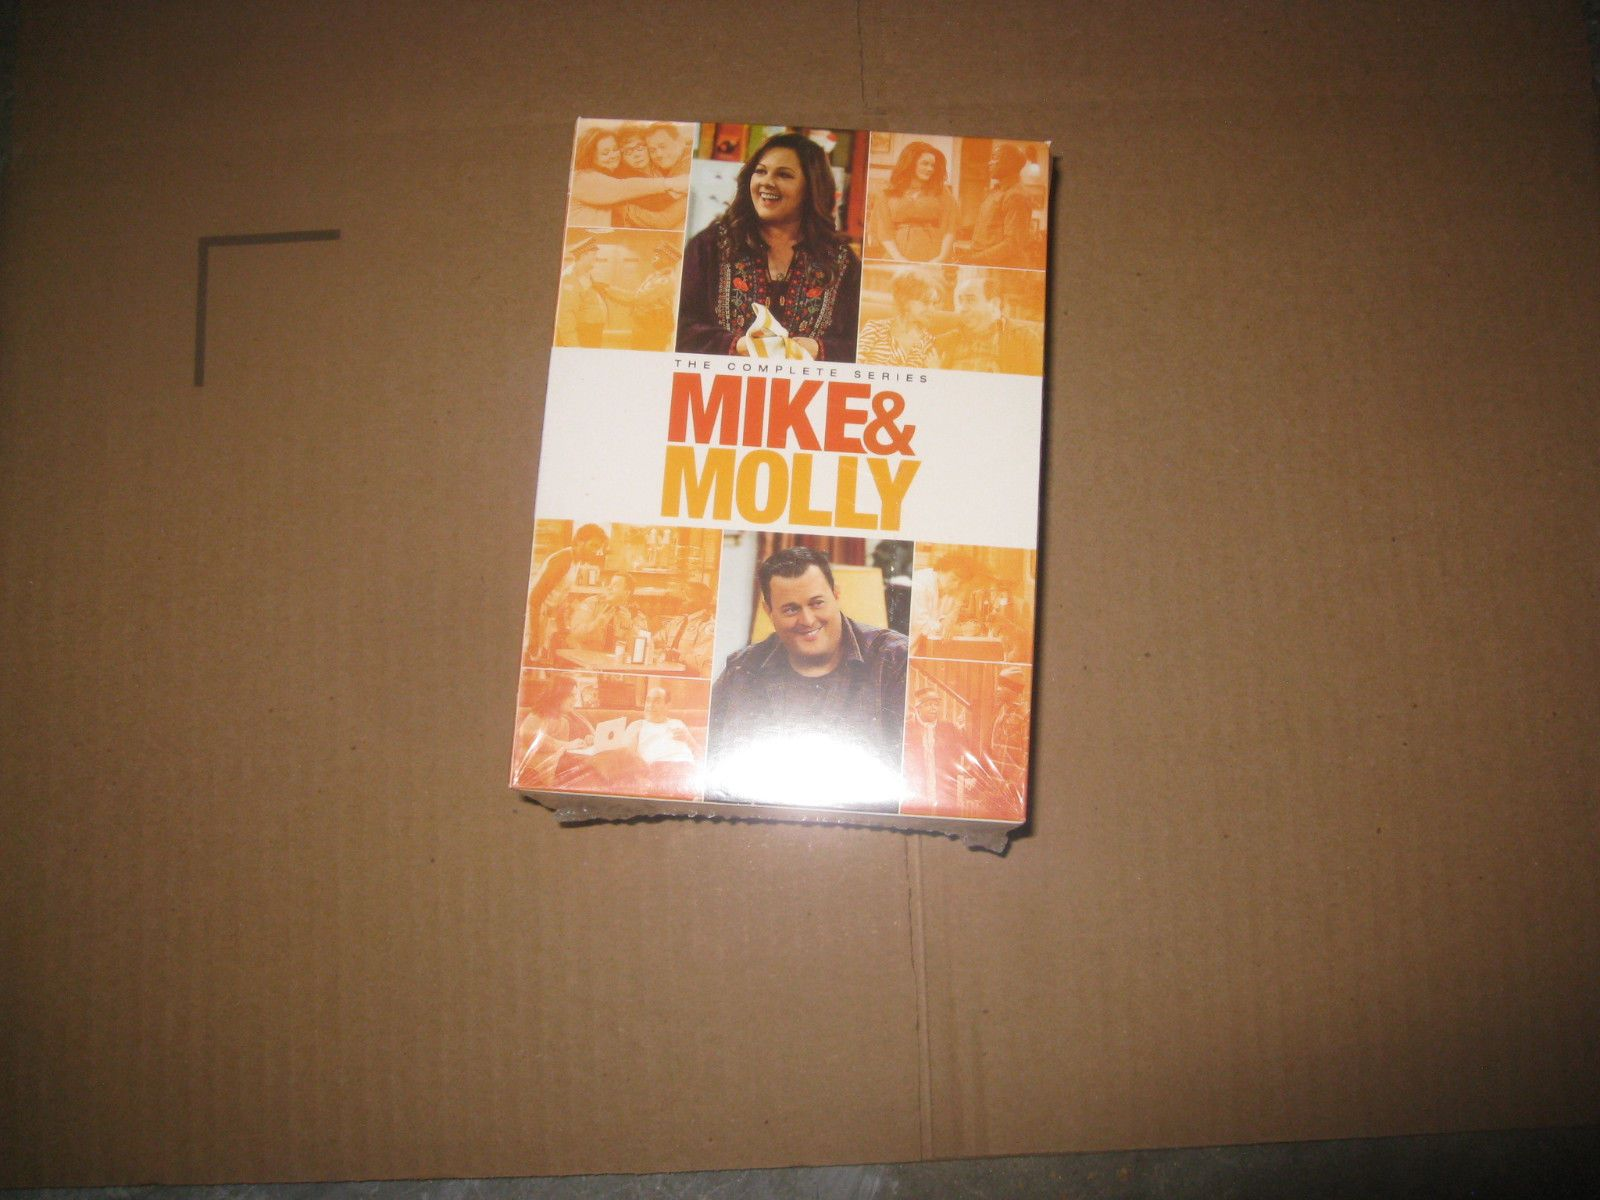 Mike and Molly The Complete Series Seasons 1-6 (DVD 2016) Free Shipping https://t.co/jB4q8msgtZ https://t.co/BmmukhdXHF